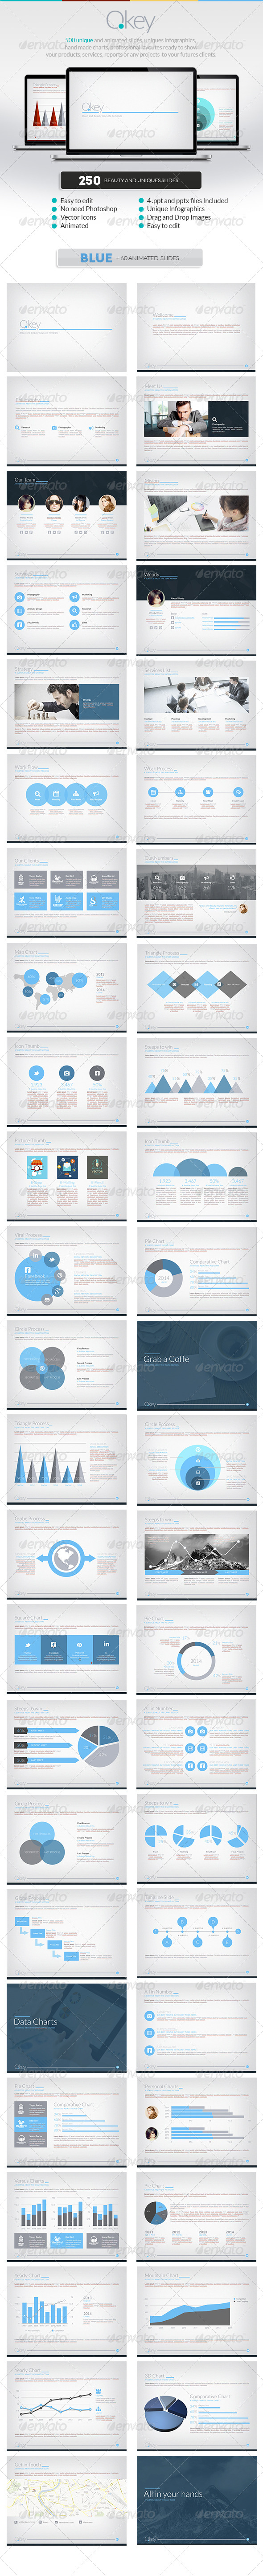 GraphicRiver Okey Powerpoint Presentation 8535925